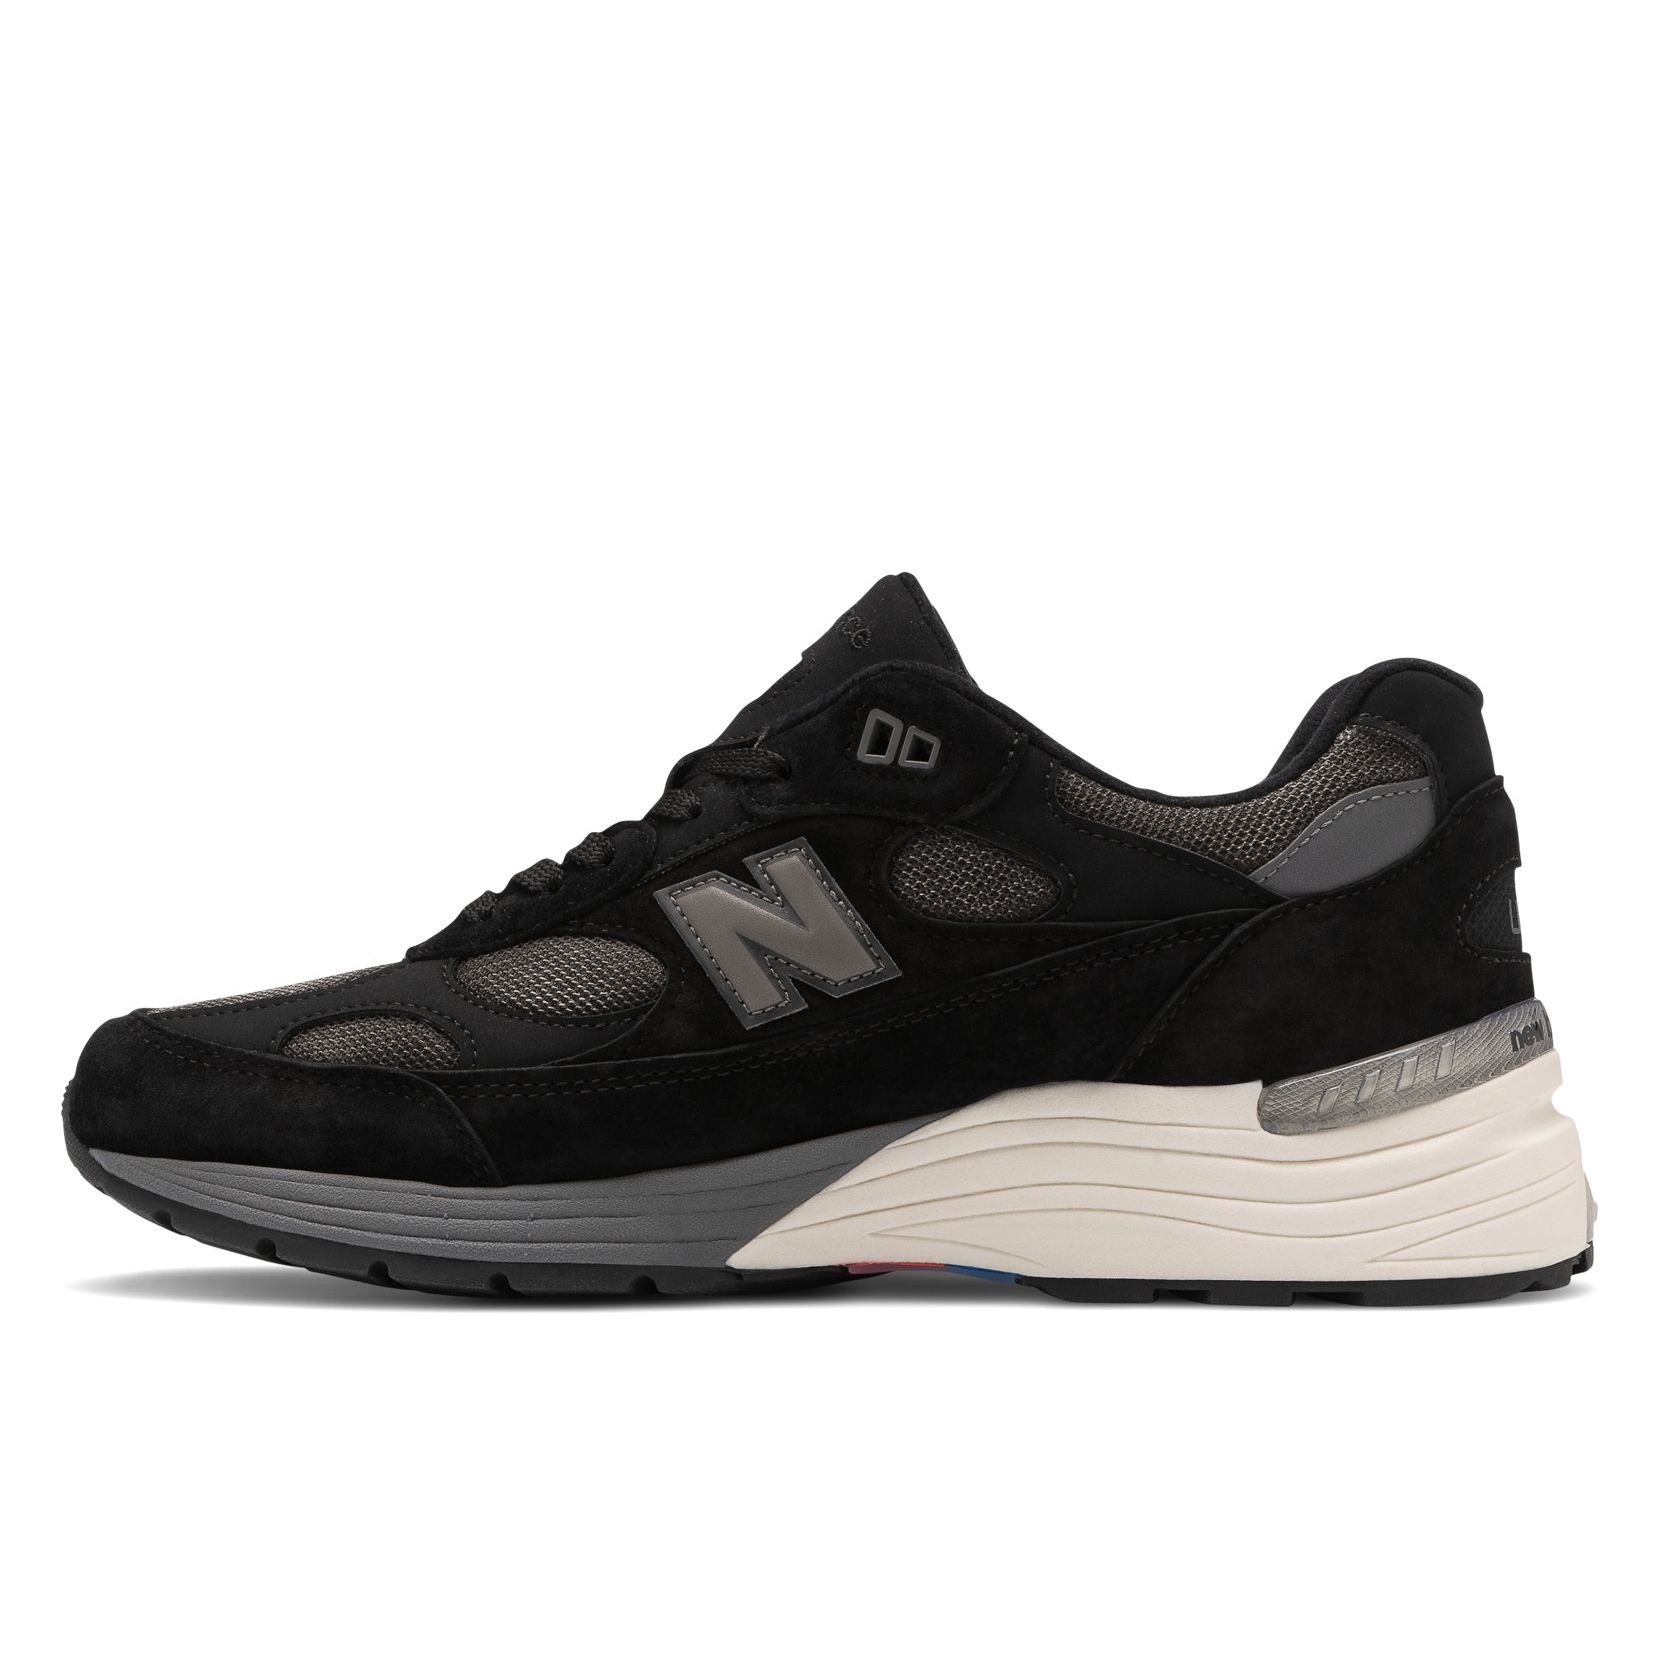 New Balance 992 Made in US Bring Back